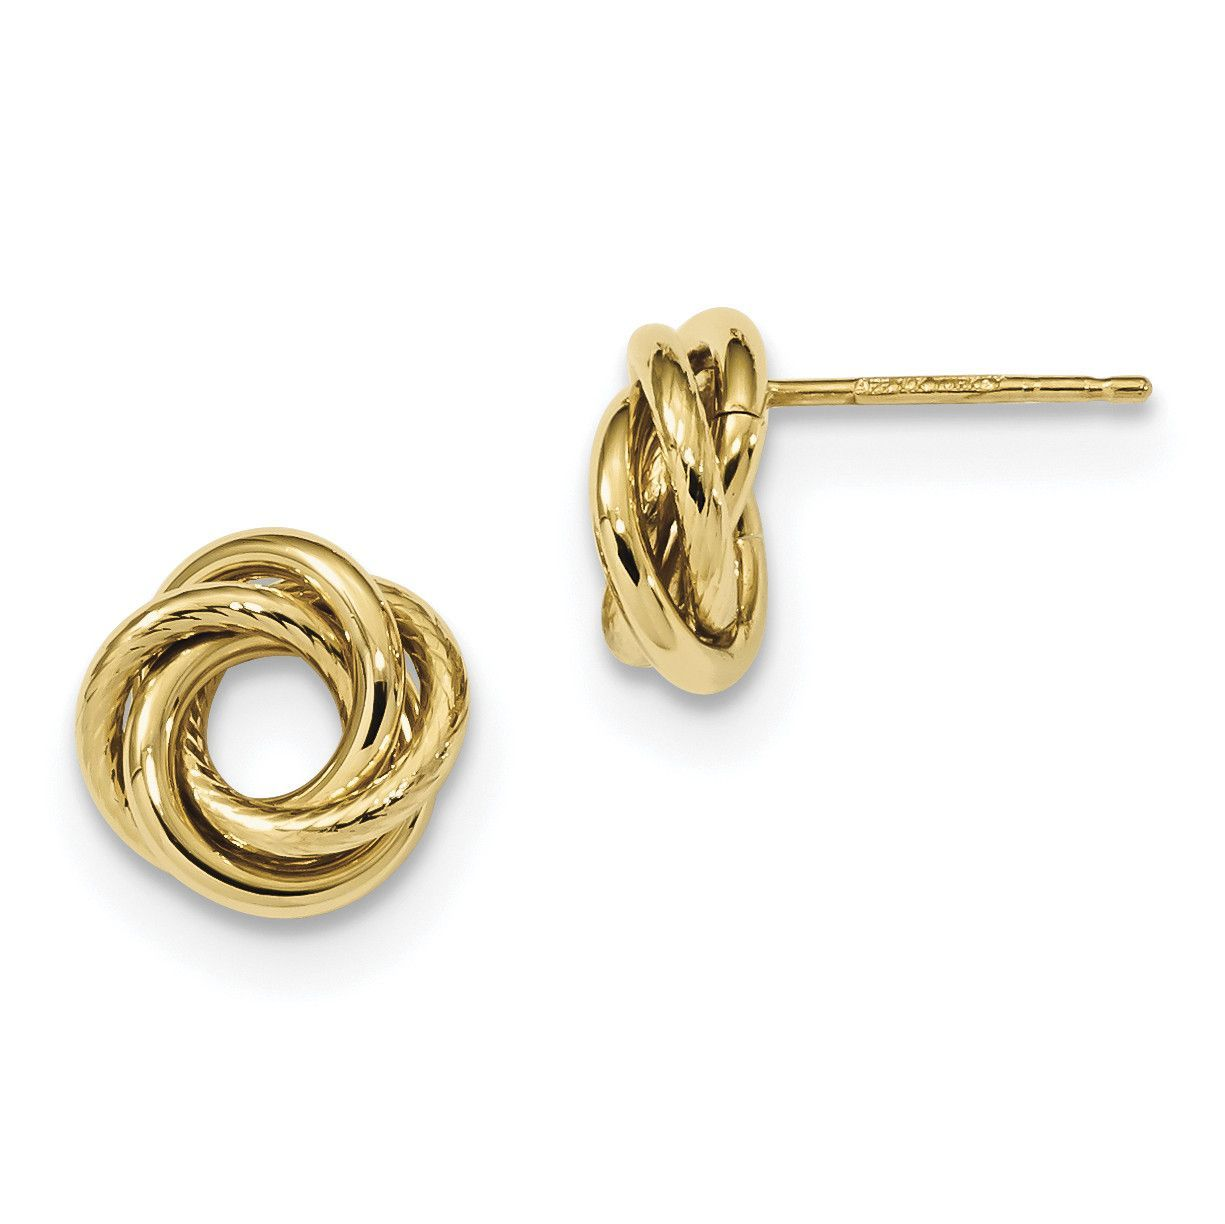 14k Gold Polished Love Knot Post Earrings TL1083